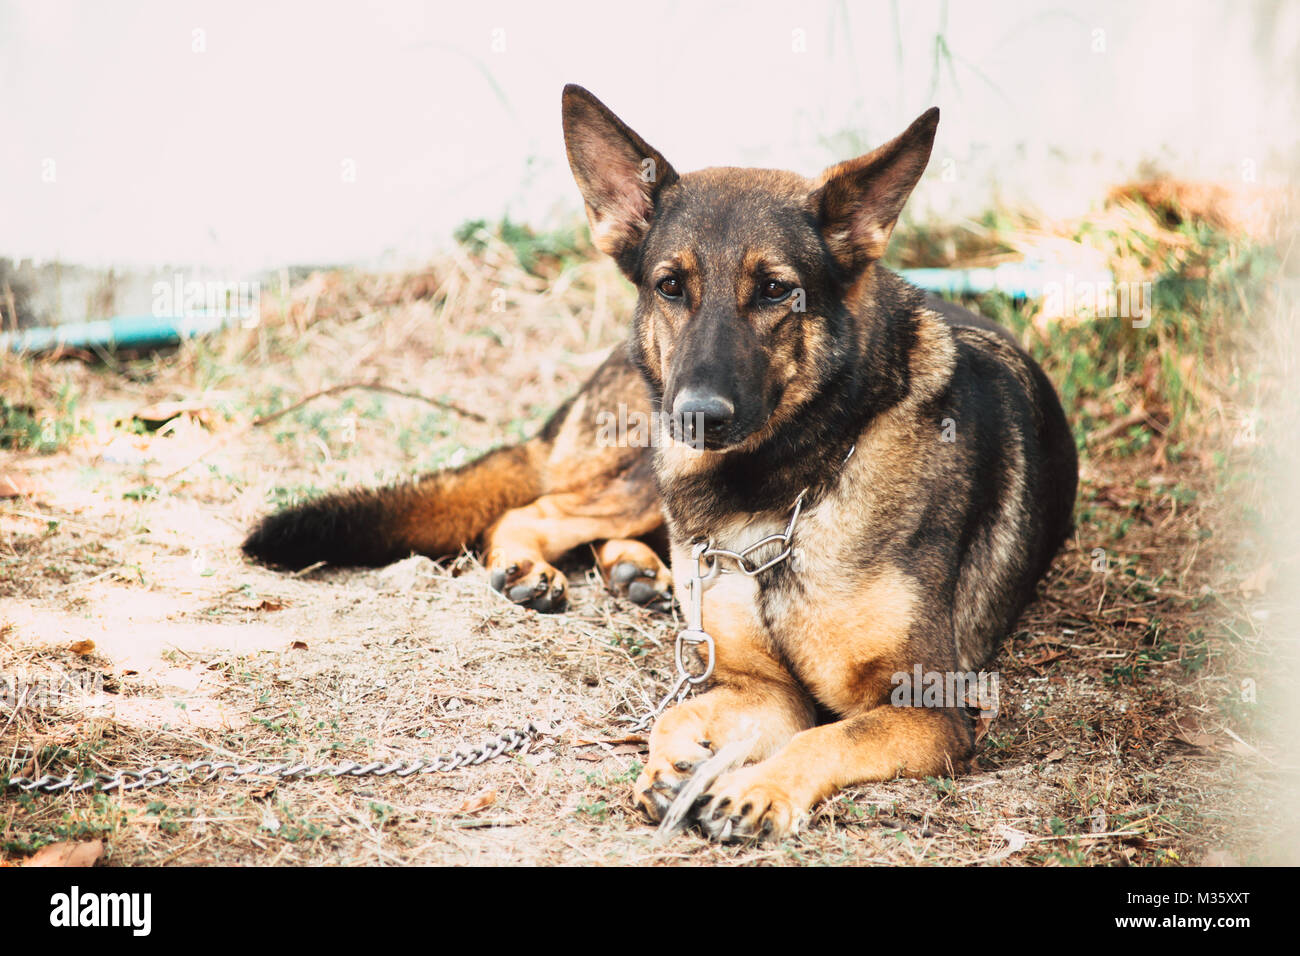 German Shepherd Dog K 9 Military Soldier Alsatian Dog Serious Face